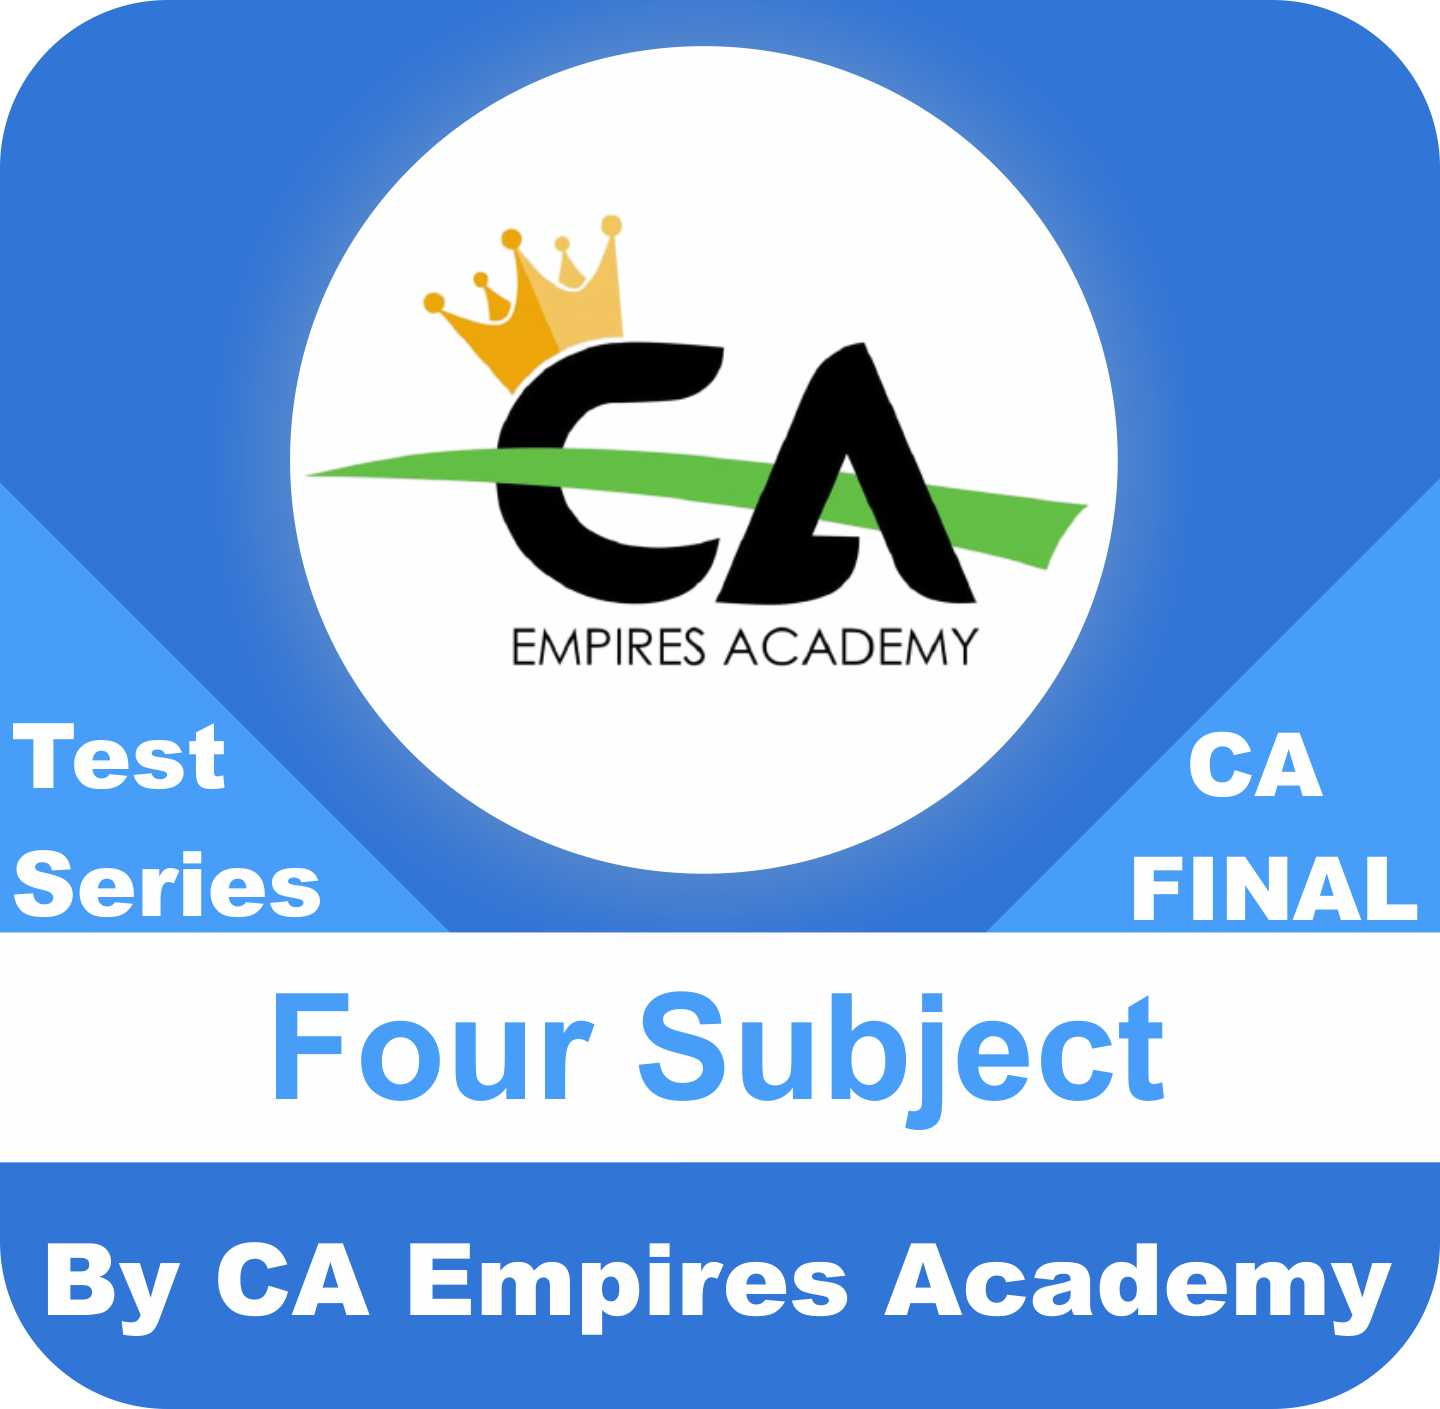 CA Final Any Four Subject Test Series in Gold Plan by CA Empires Academy